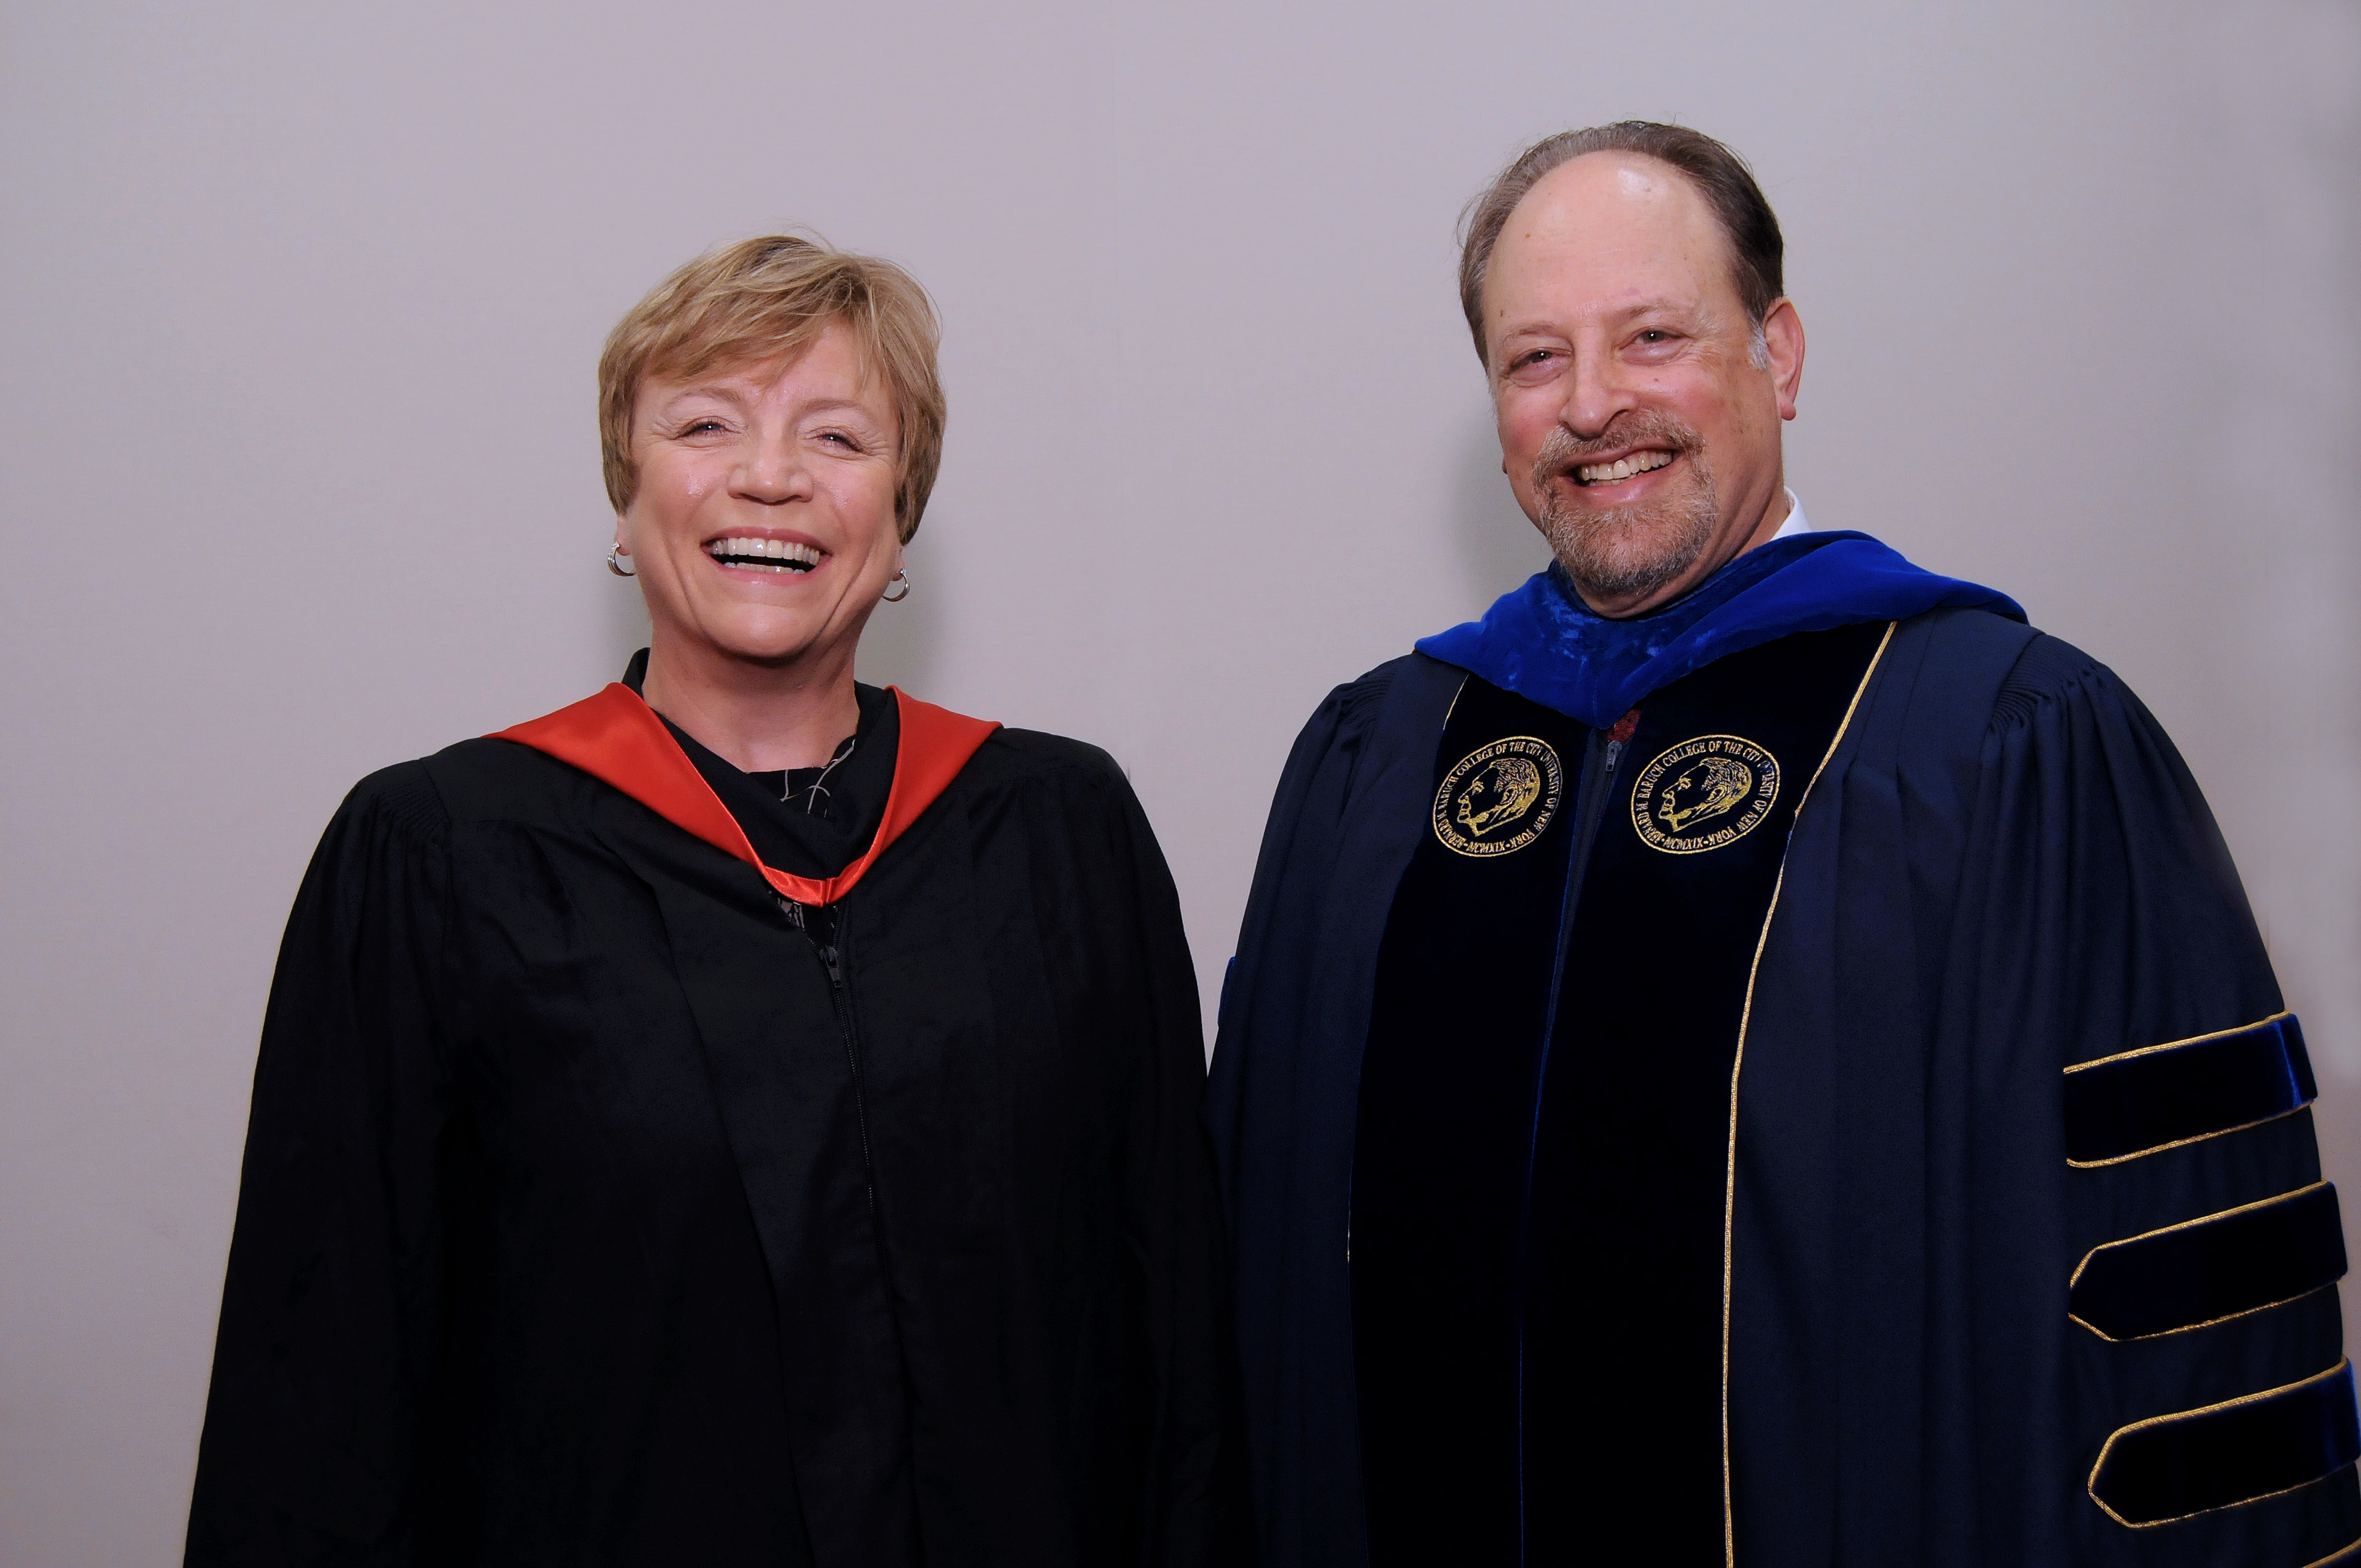 President Wallerstein and Irene Dorner